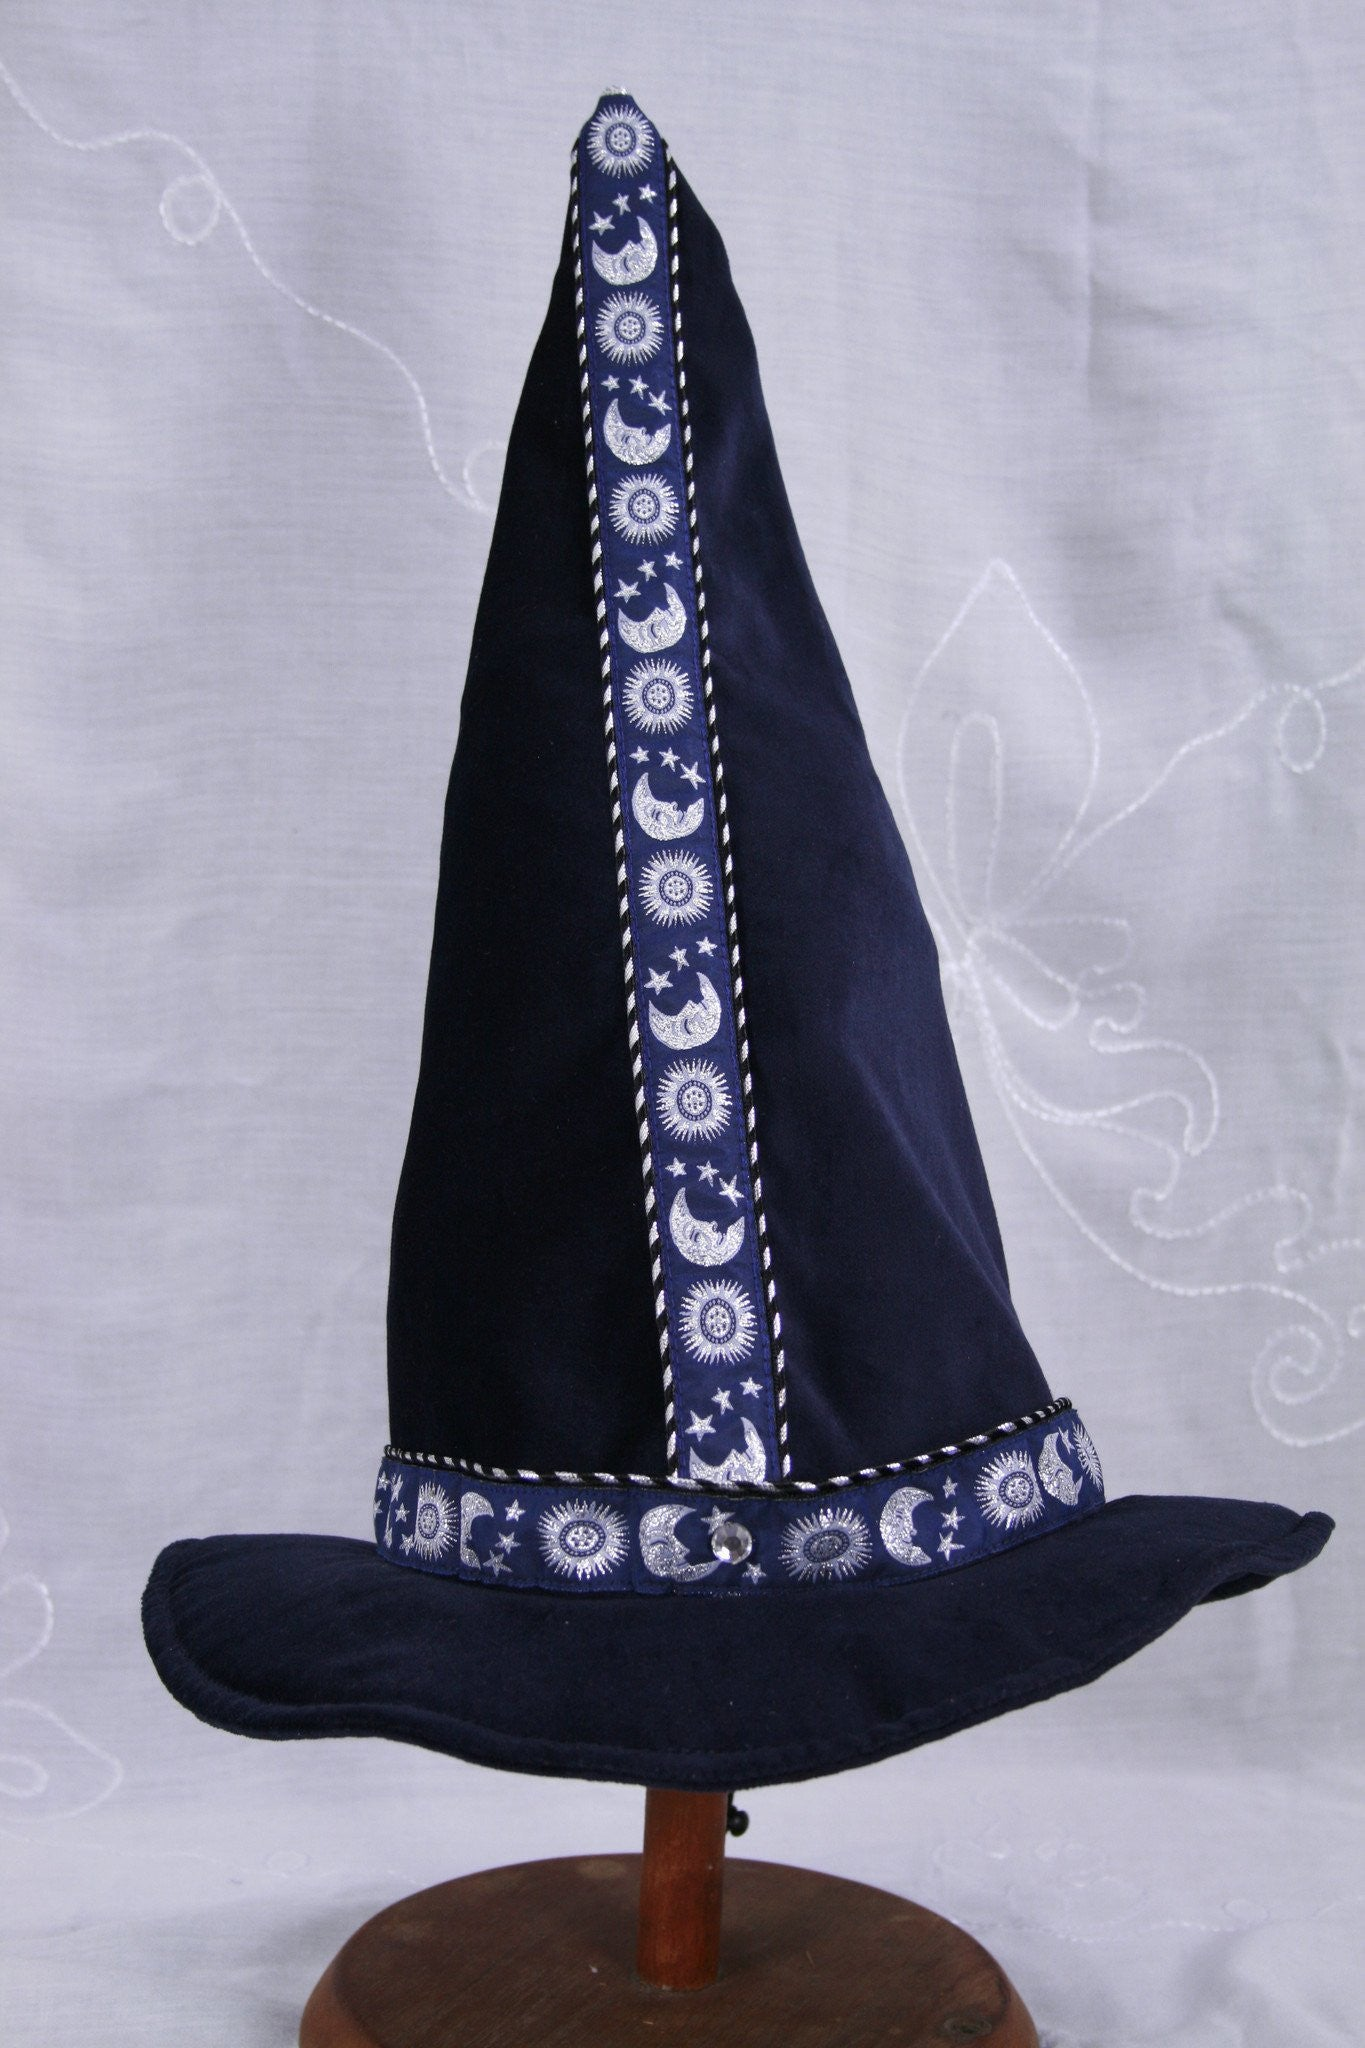 Cotton Velveteen Wizard Hat - Blue / Silver Moon and Stars - Tall Toad